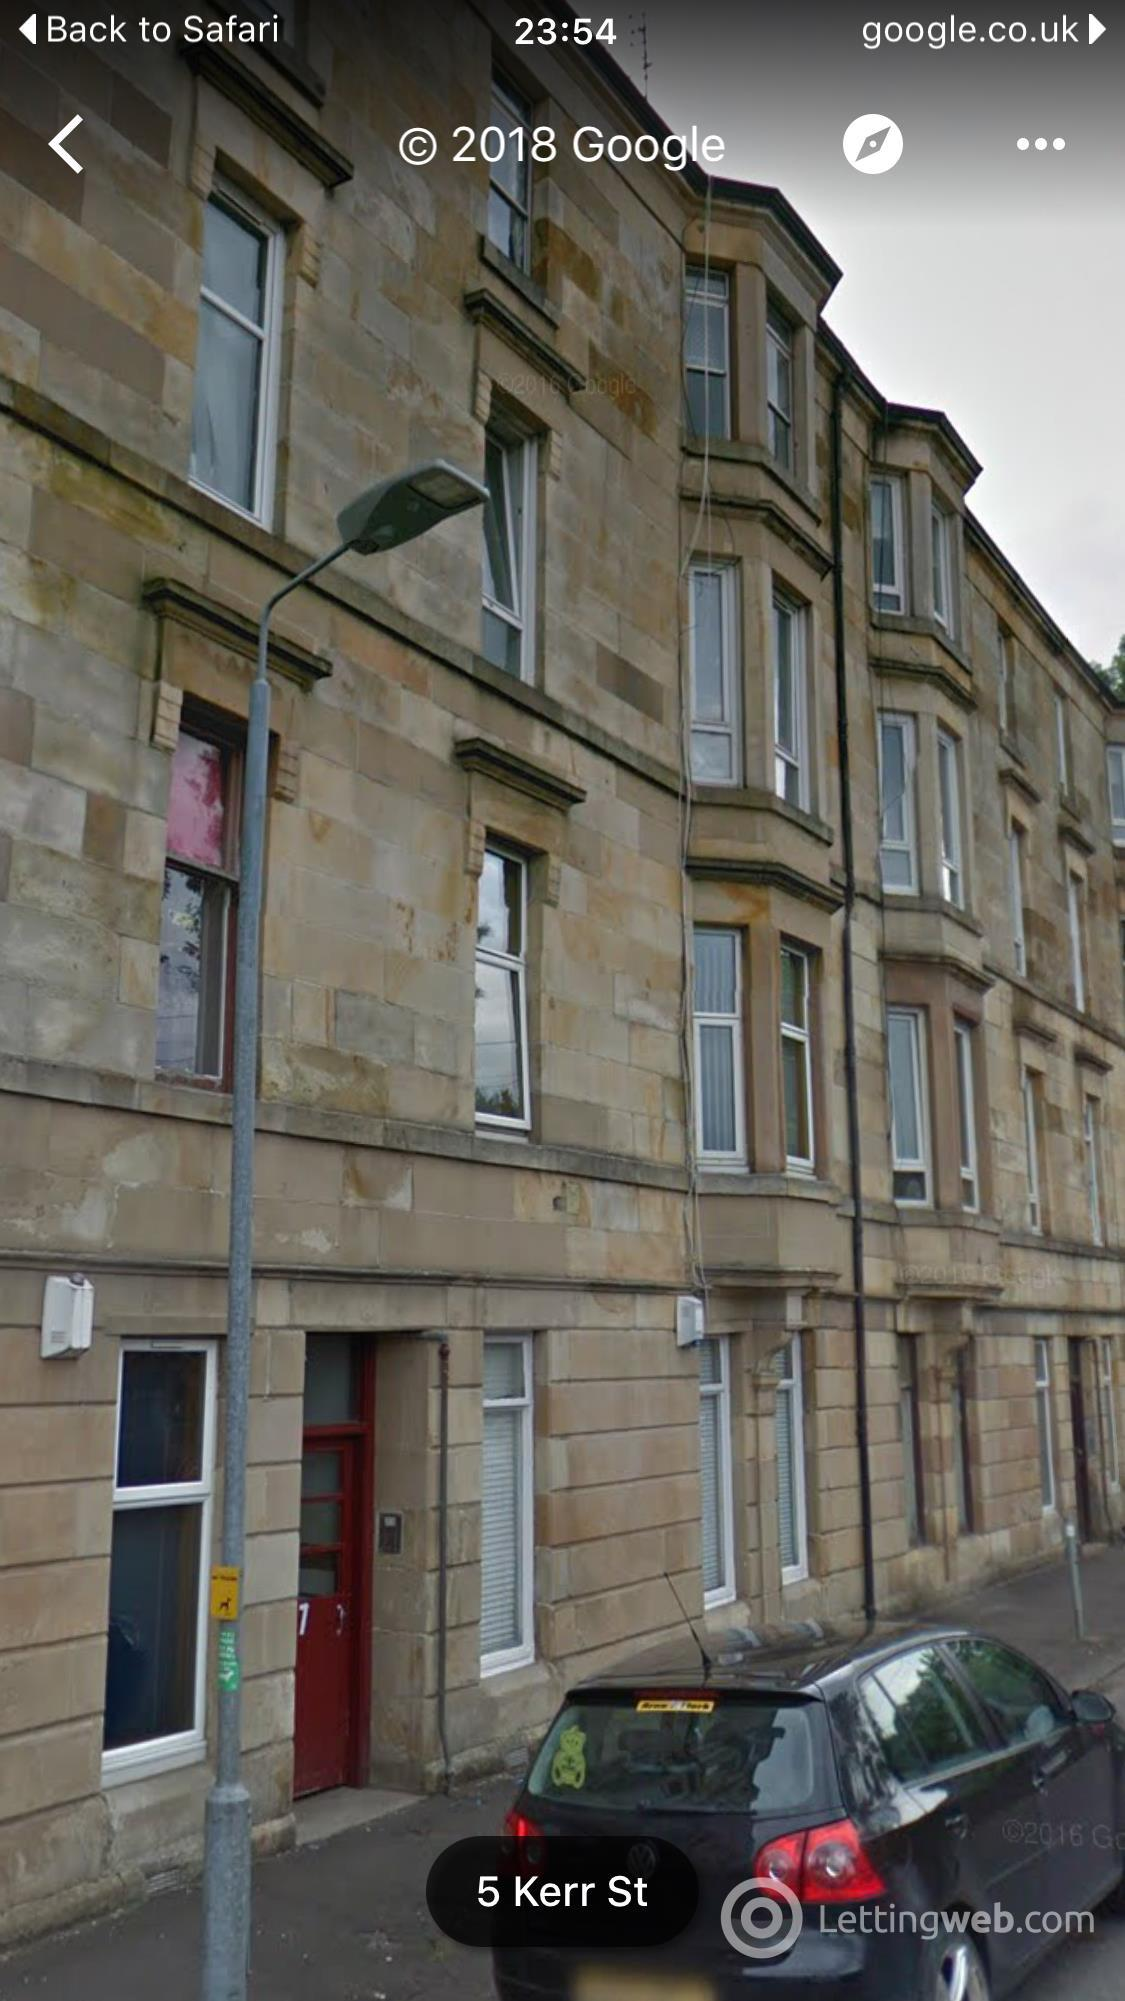 Property to rent in Kerr street, paisley